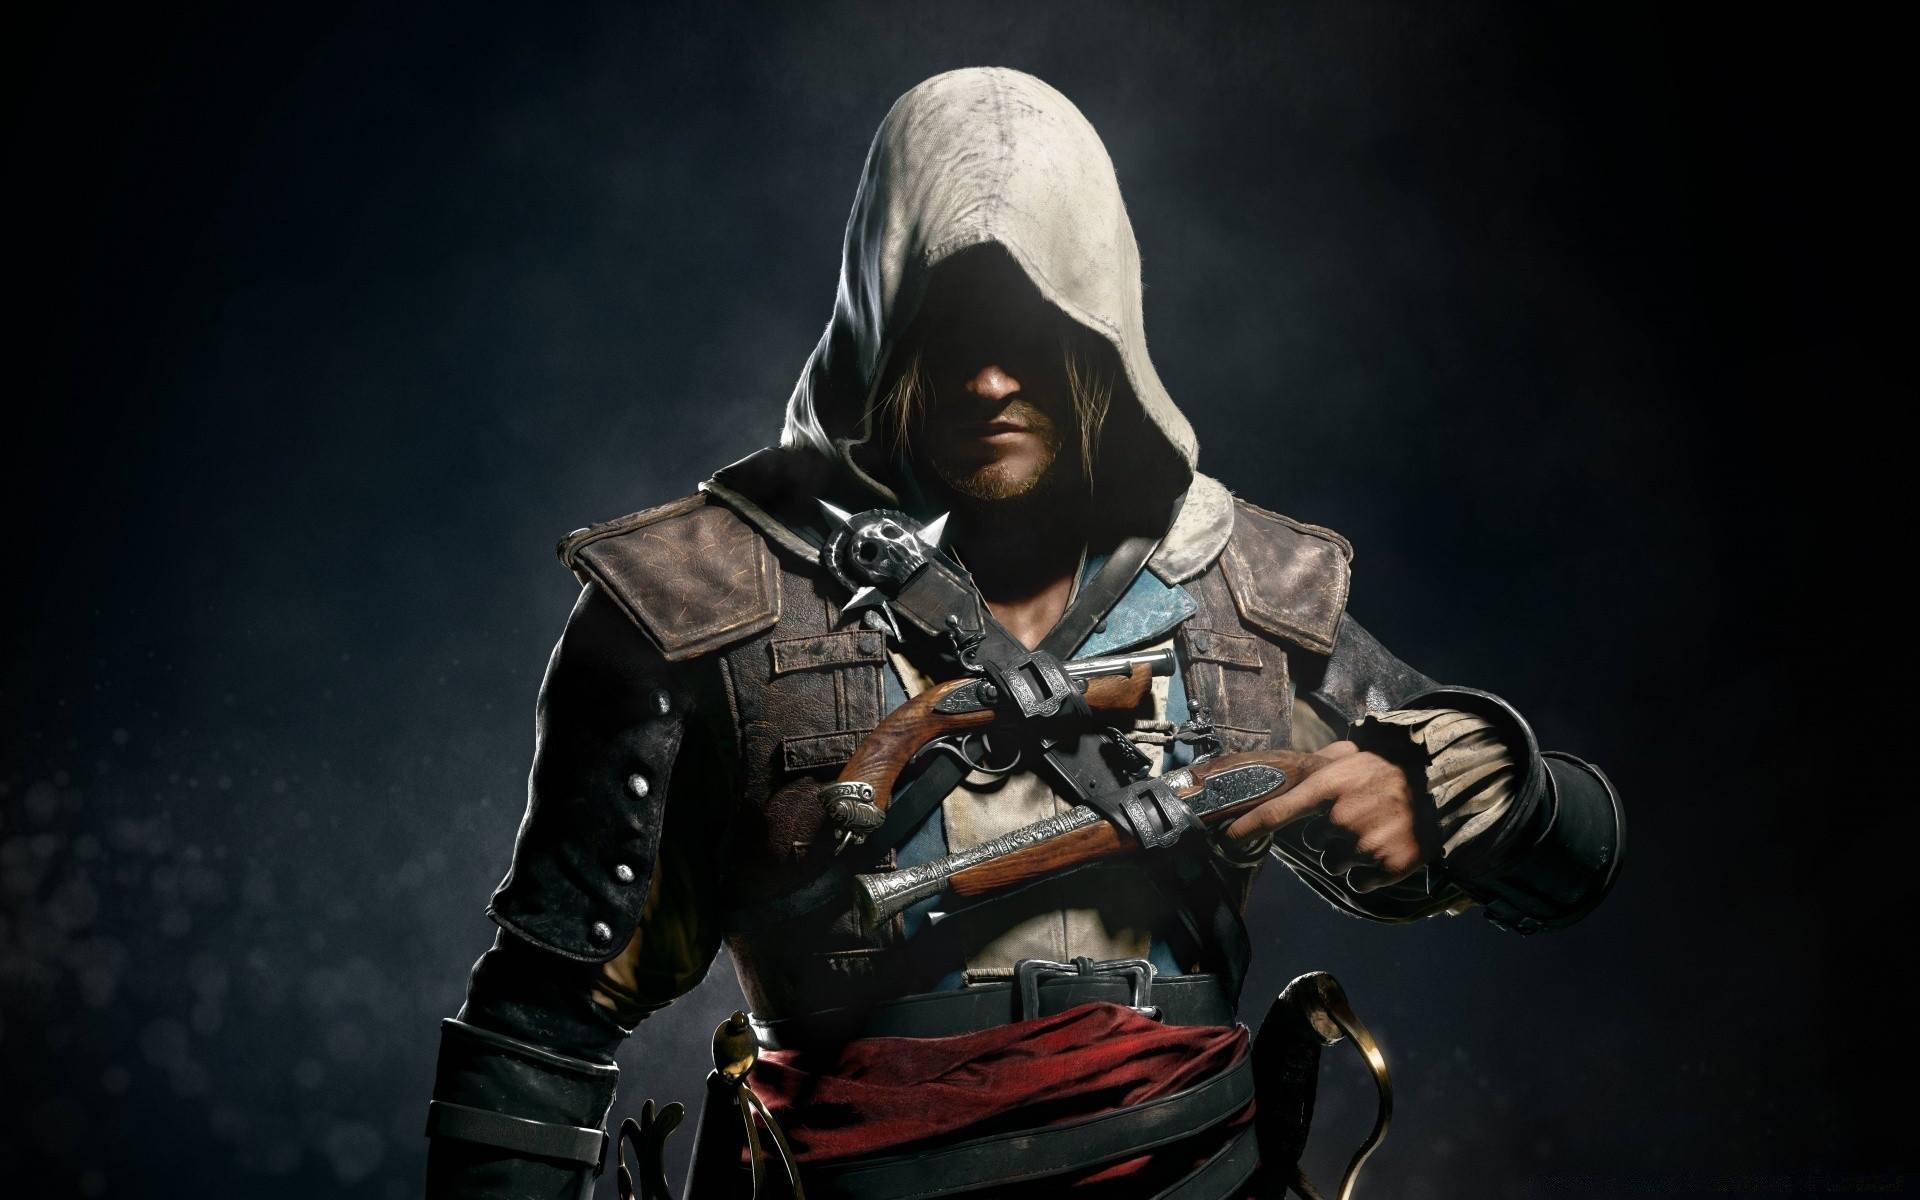 Assassins Creed IV черный флаг 2013 Эдвард